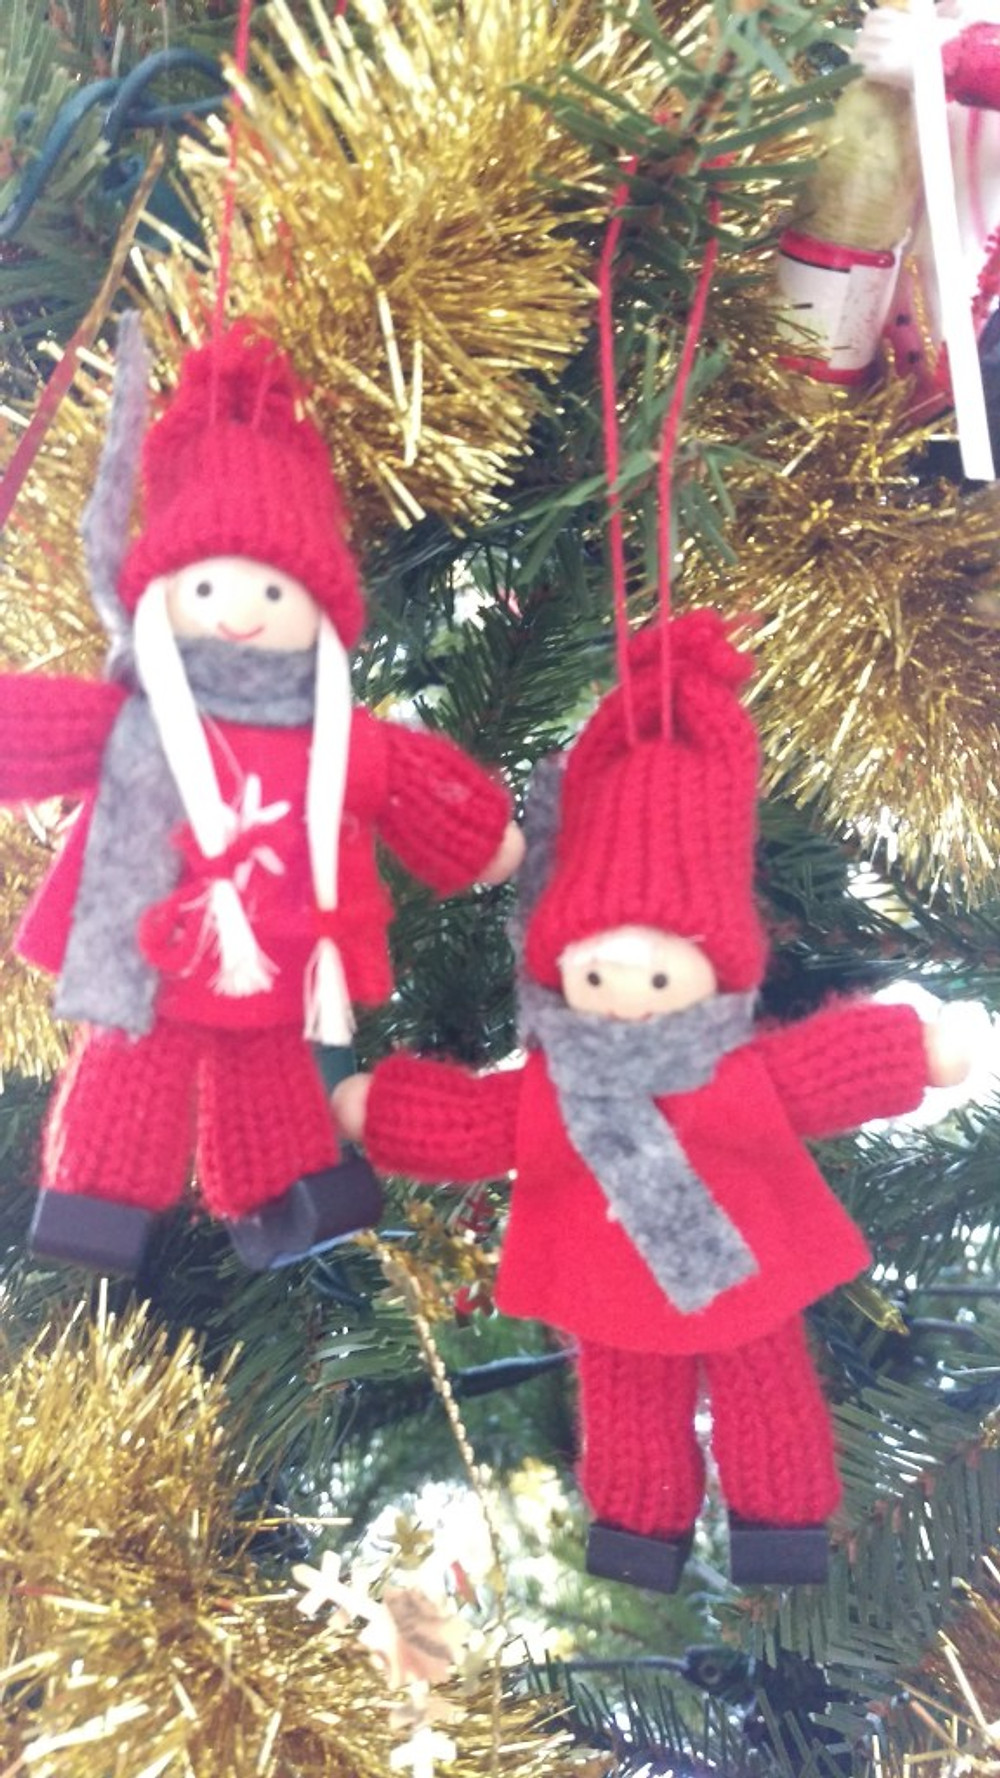 A boy and girl ornament in red yarn snow suits.